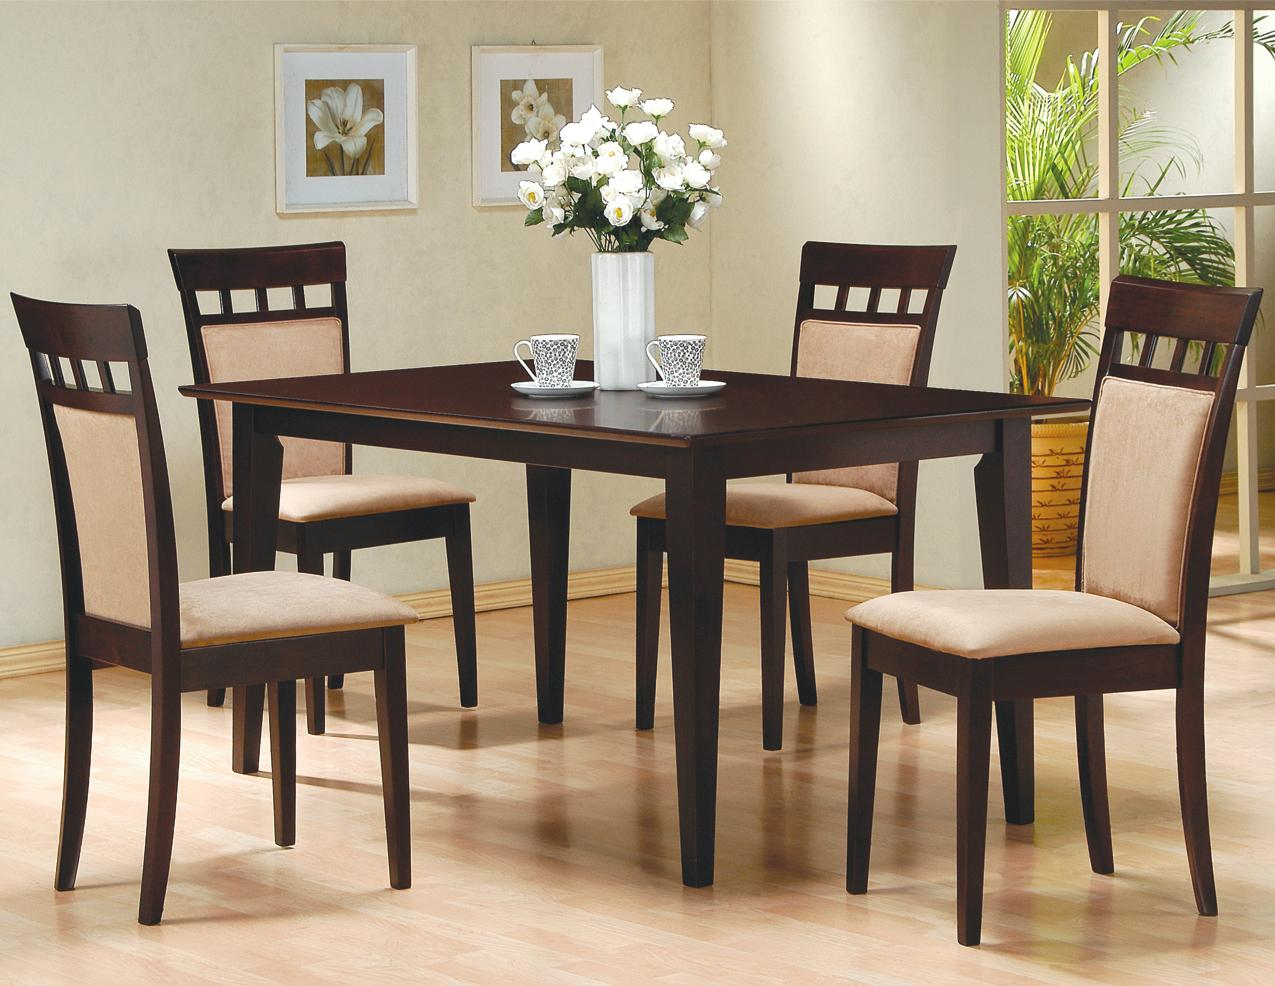 Mix & Match cappuccino by Coaster   Rooms for Less   Coaster Mix ...